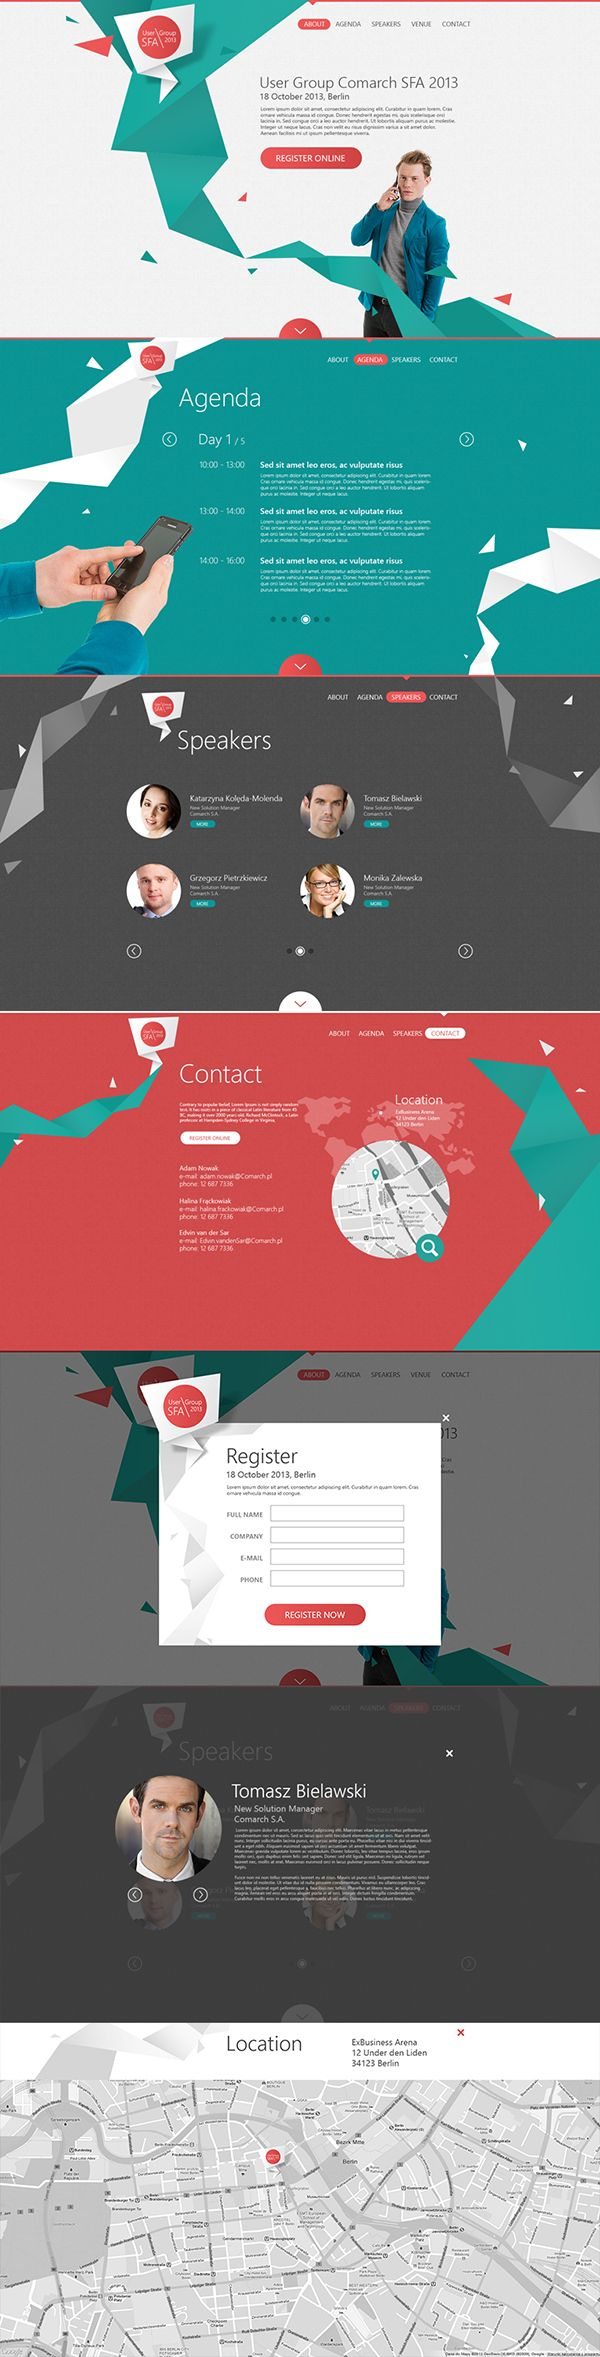 User Group SFA 2013 by Leszek Jędraszczak, via Behance #strongmessage #clean #uniquebackground #app #nicecolor